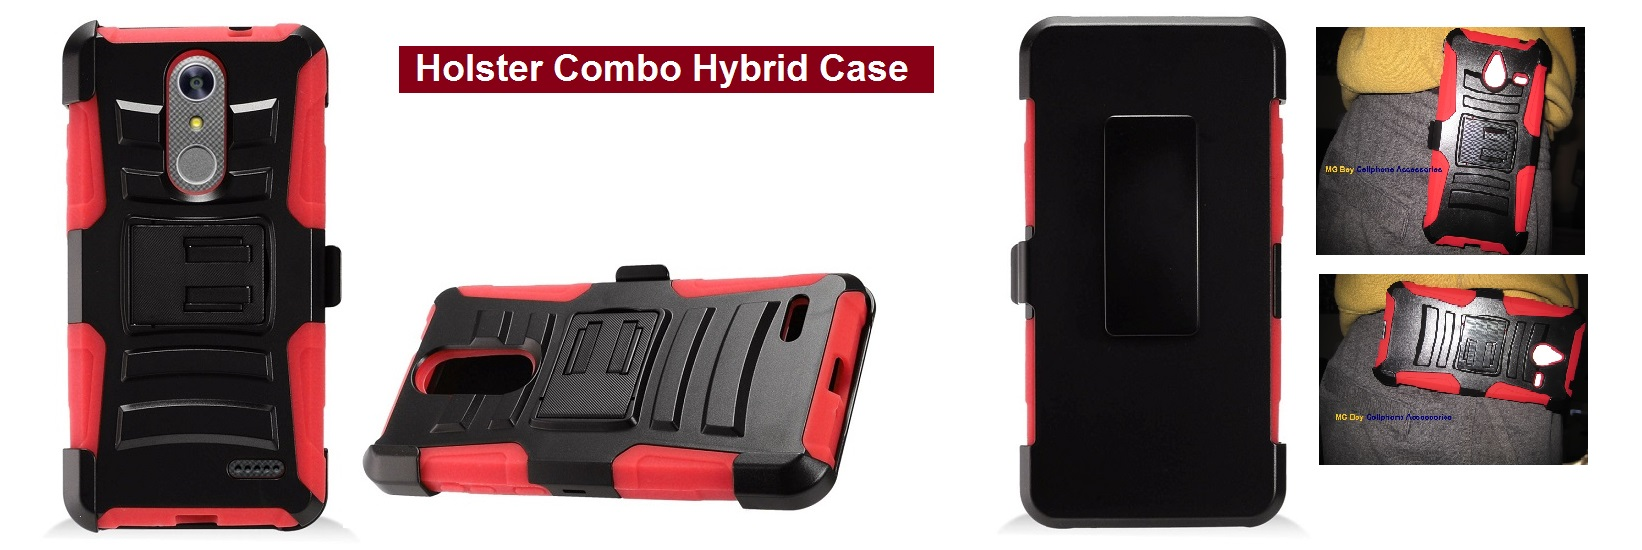 zte-grand-x-4-z956-holster-combo-red-case-pic-1.jpg